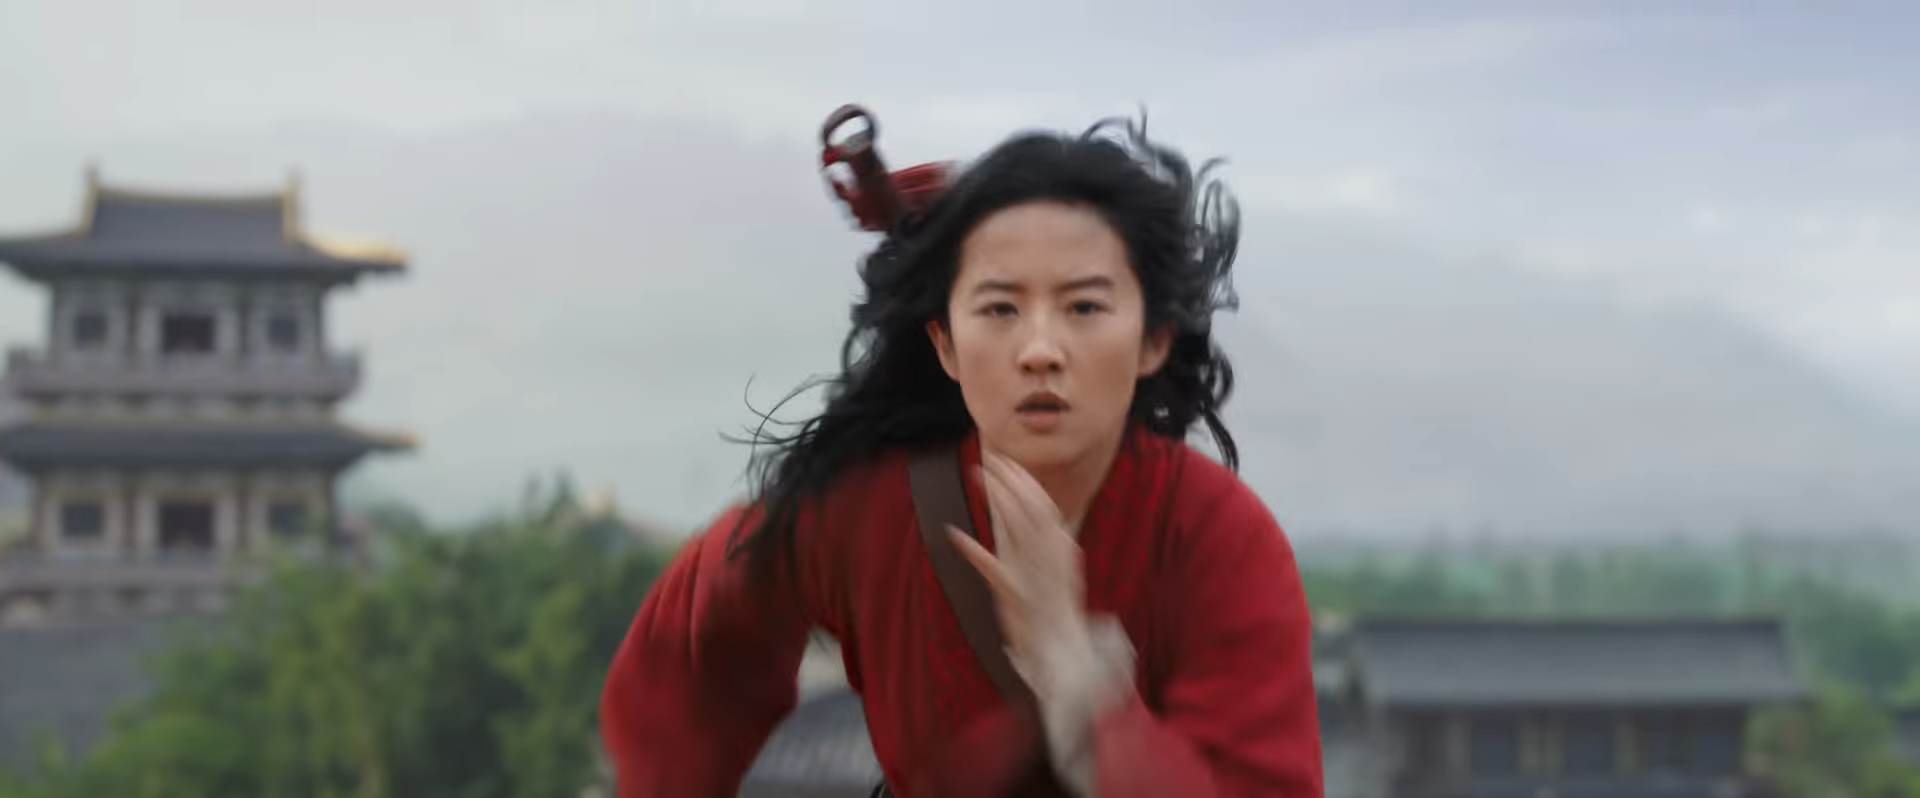 Mulan (2020) Photo | Mulan movie, Mulan, Movie photo